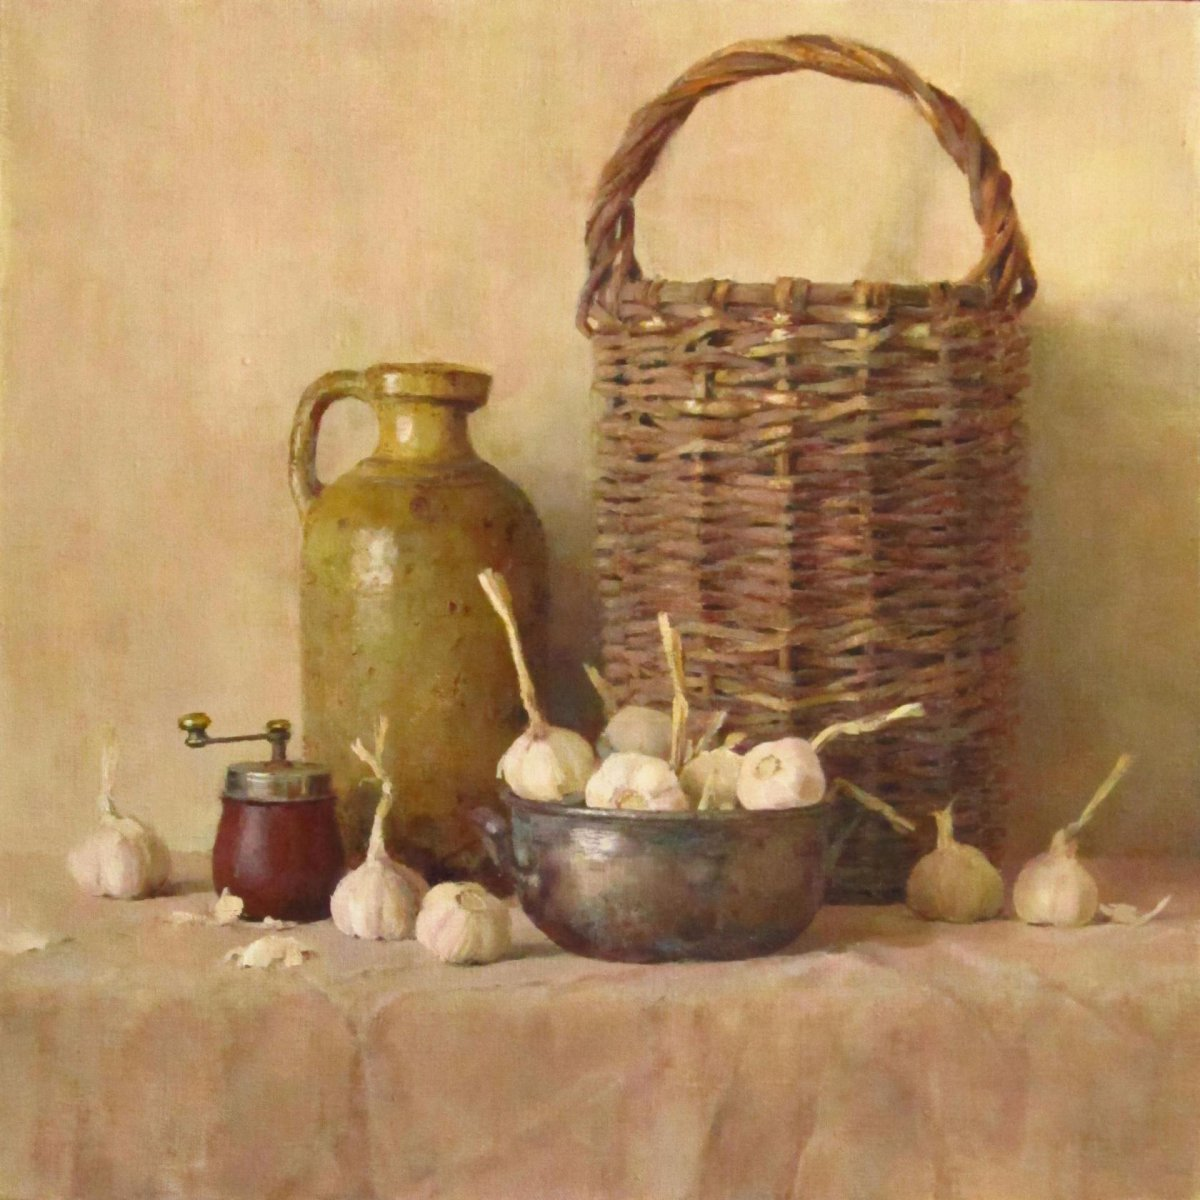 still life with a basket - Evgenia Trifonova